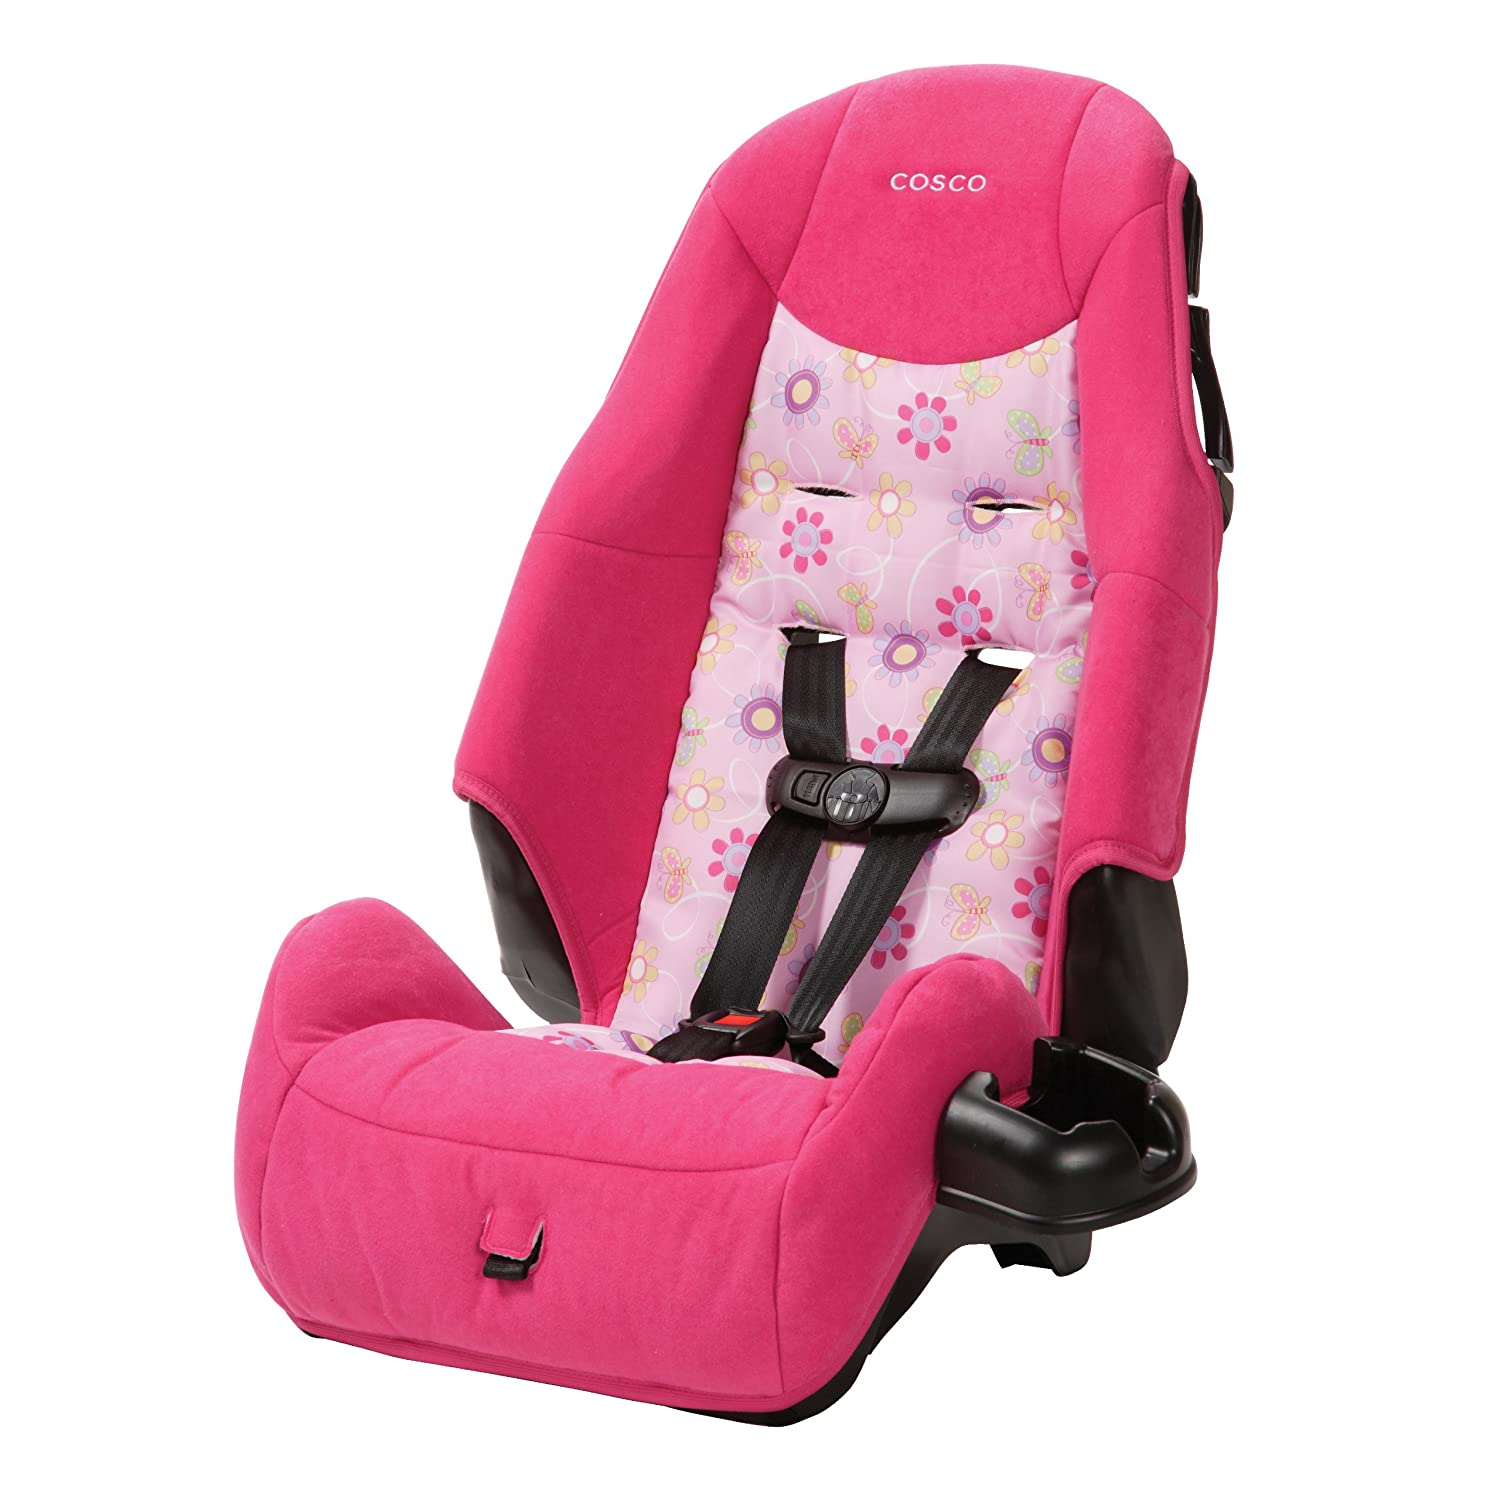 Cosco – Highback 2-in-1 Booster Car Seat – 5-Point Harness or Belt-positioning – Machine Washable Fabric, Pink Cosco Inc BC038ATU